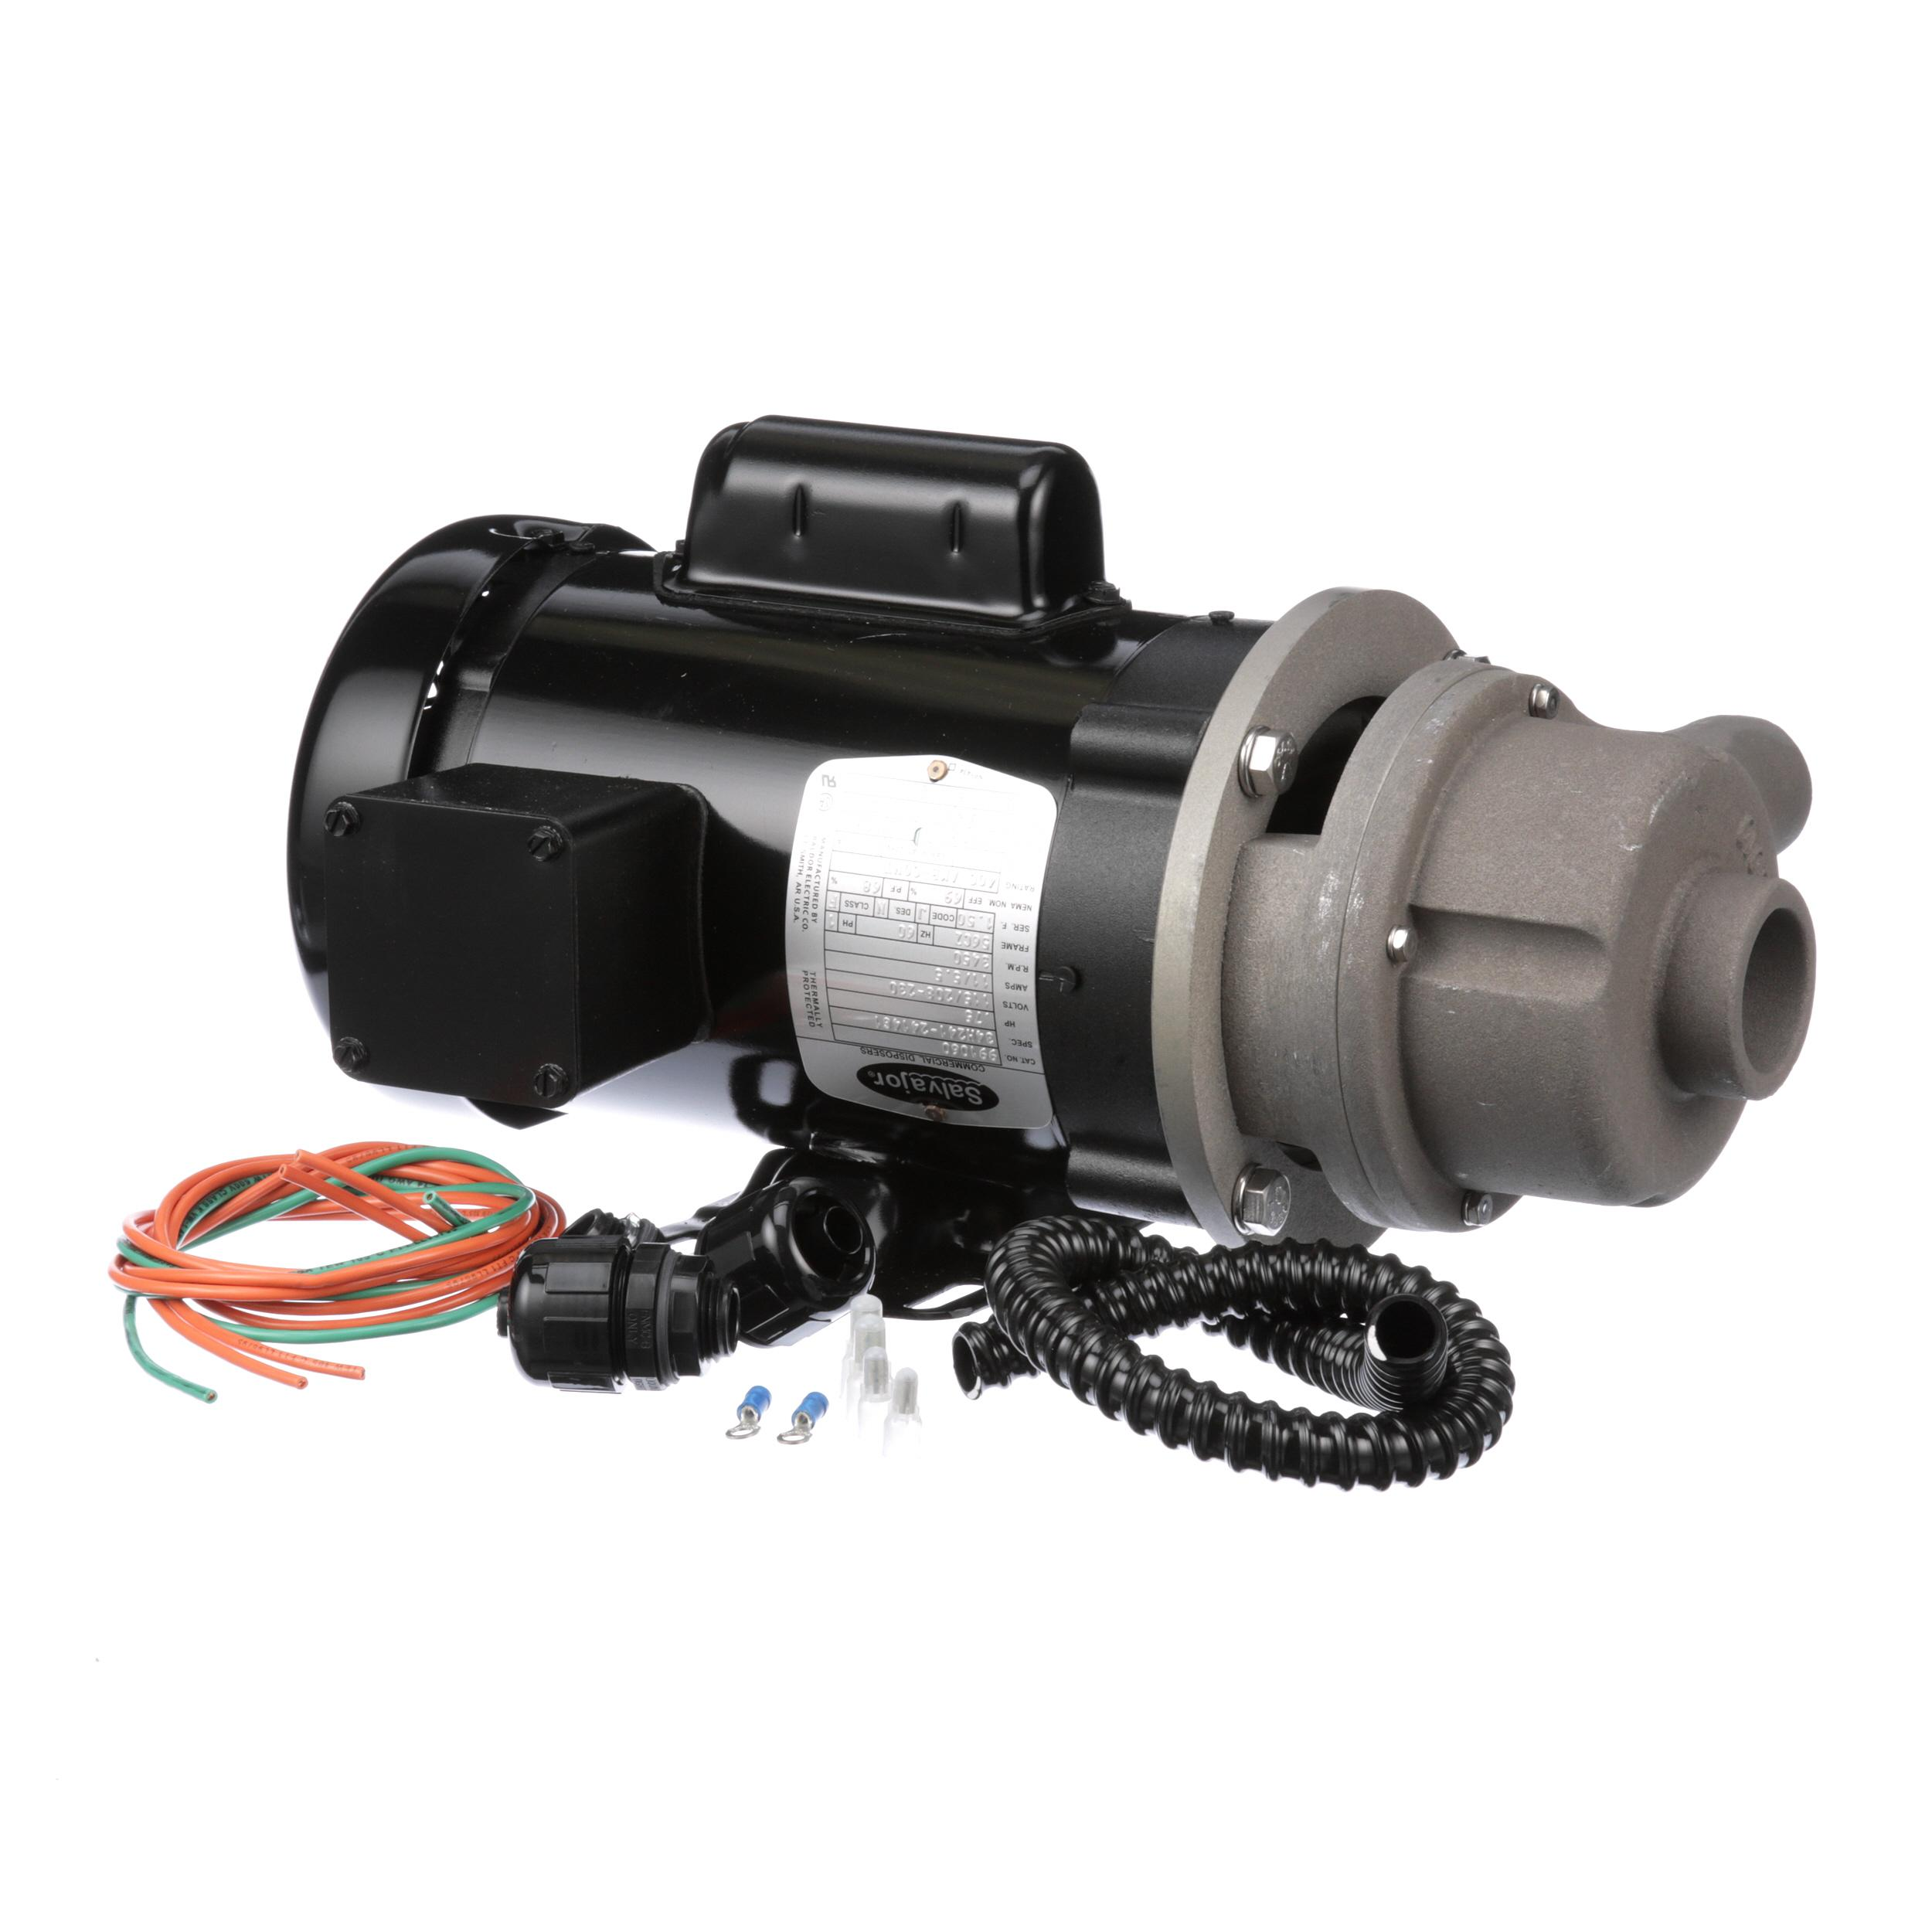 Salvajor Pump Motor Assy Part 980076